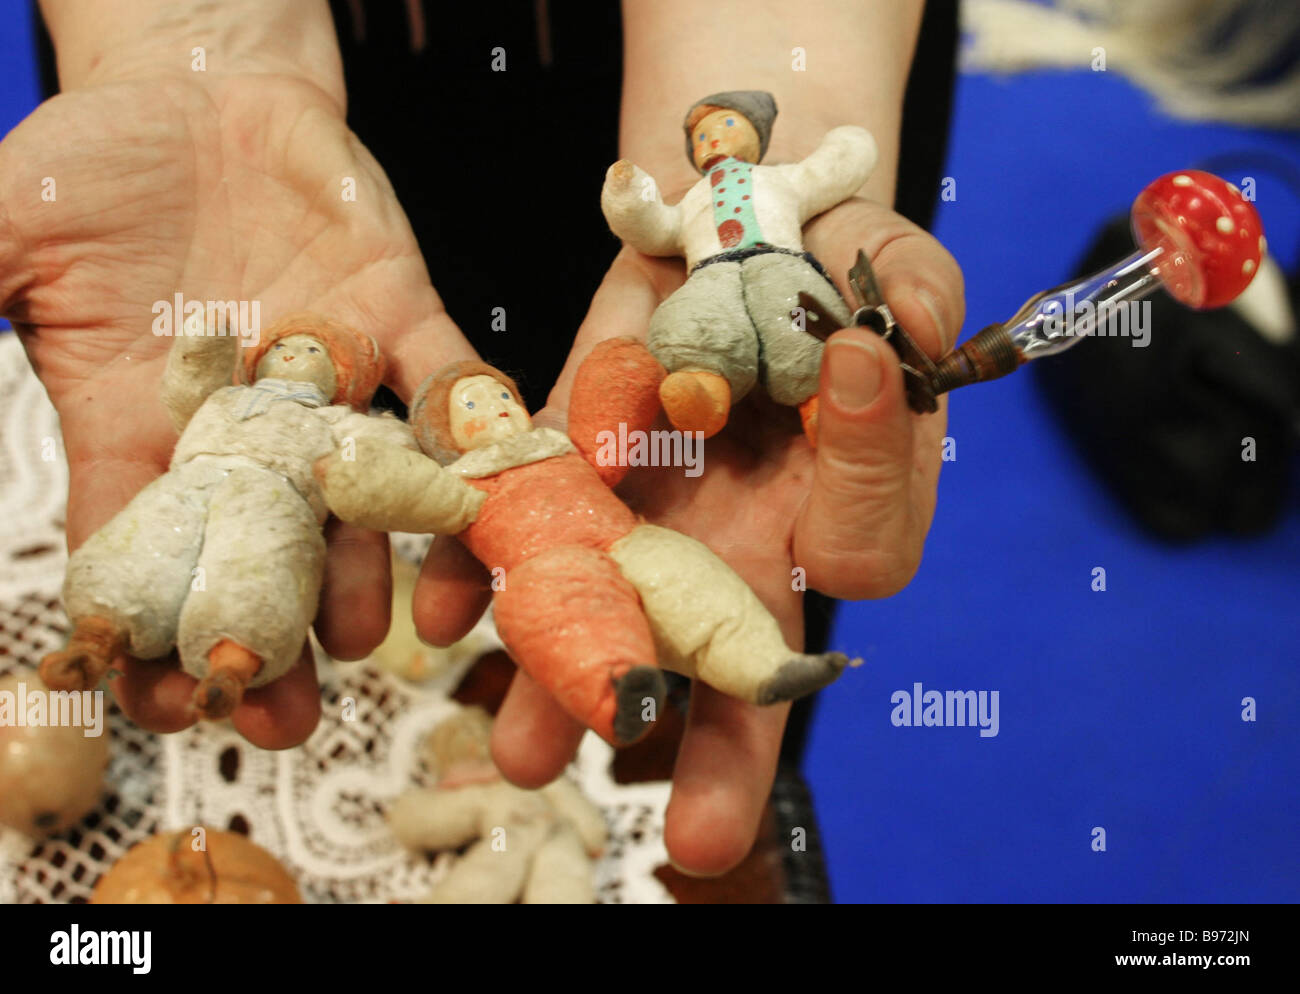 Ceramic X mas tree toys on display at the Exhibiition of X mas Tree Toys created by 20th century craftsmen - Stock Image